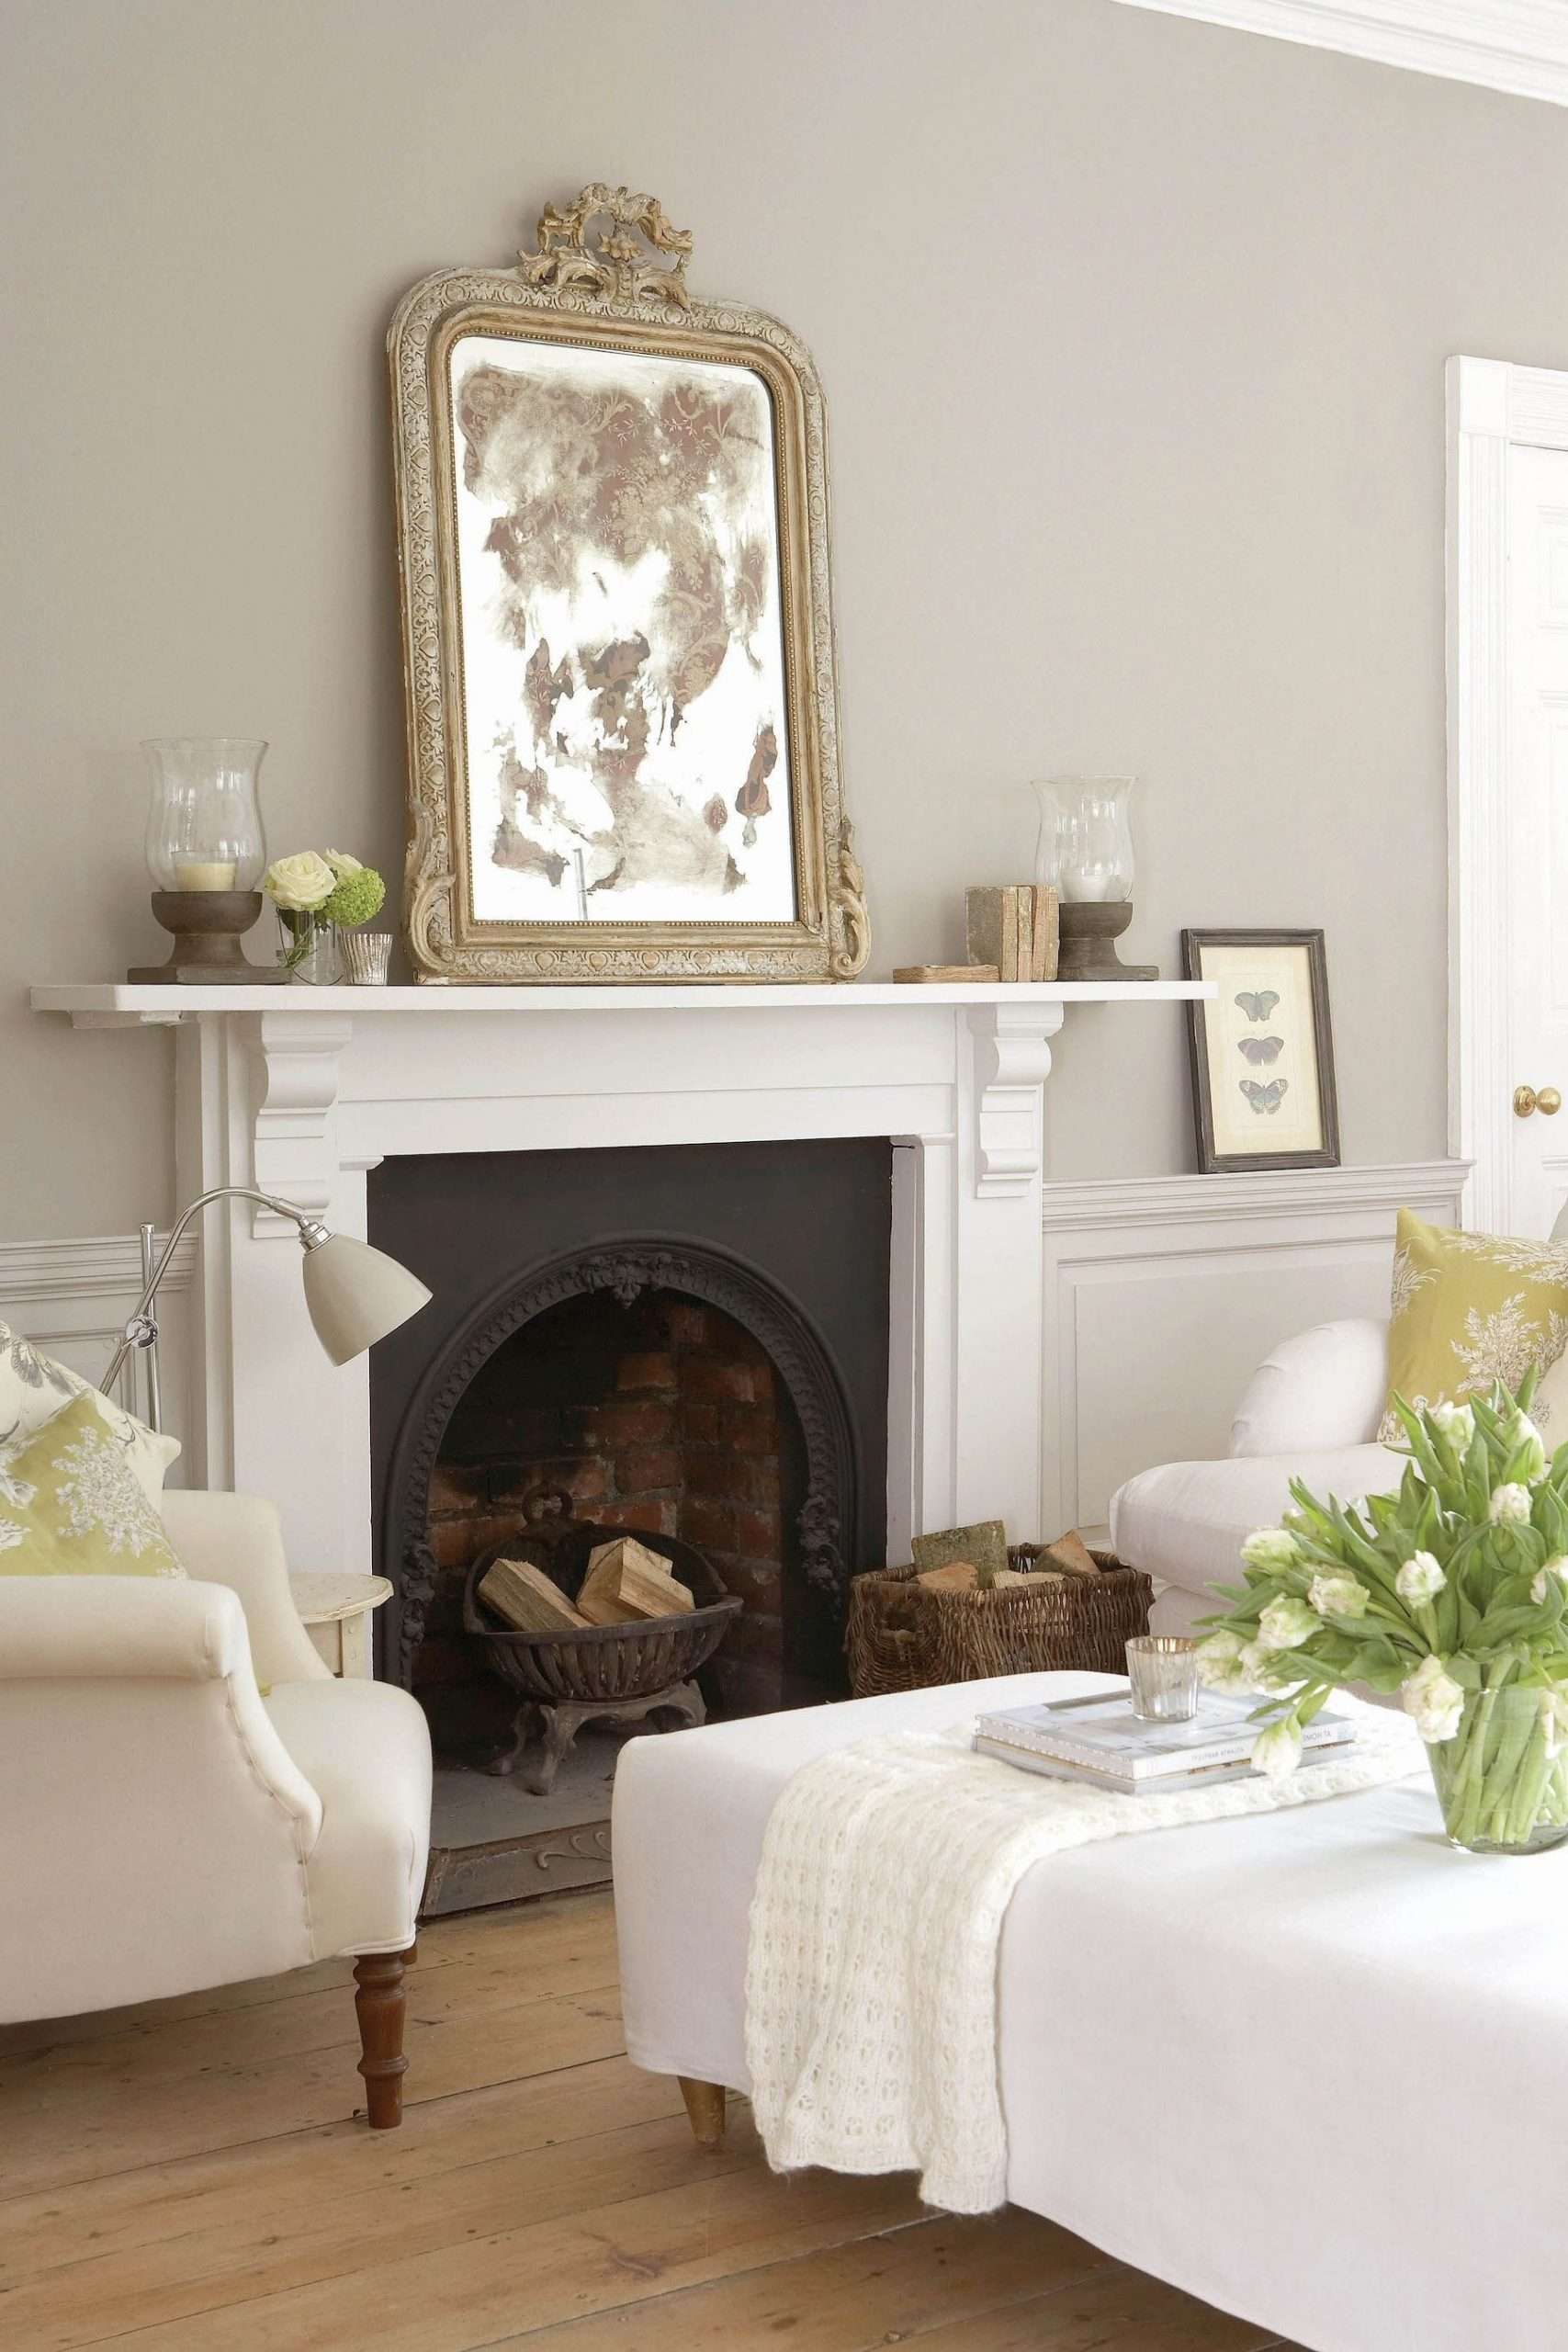 19 Grey Living Room Ideas Grey Living Room 10+ Small Living Room With Chimney Breast Inspirations